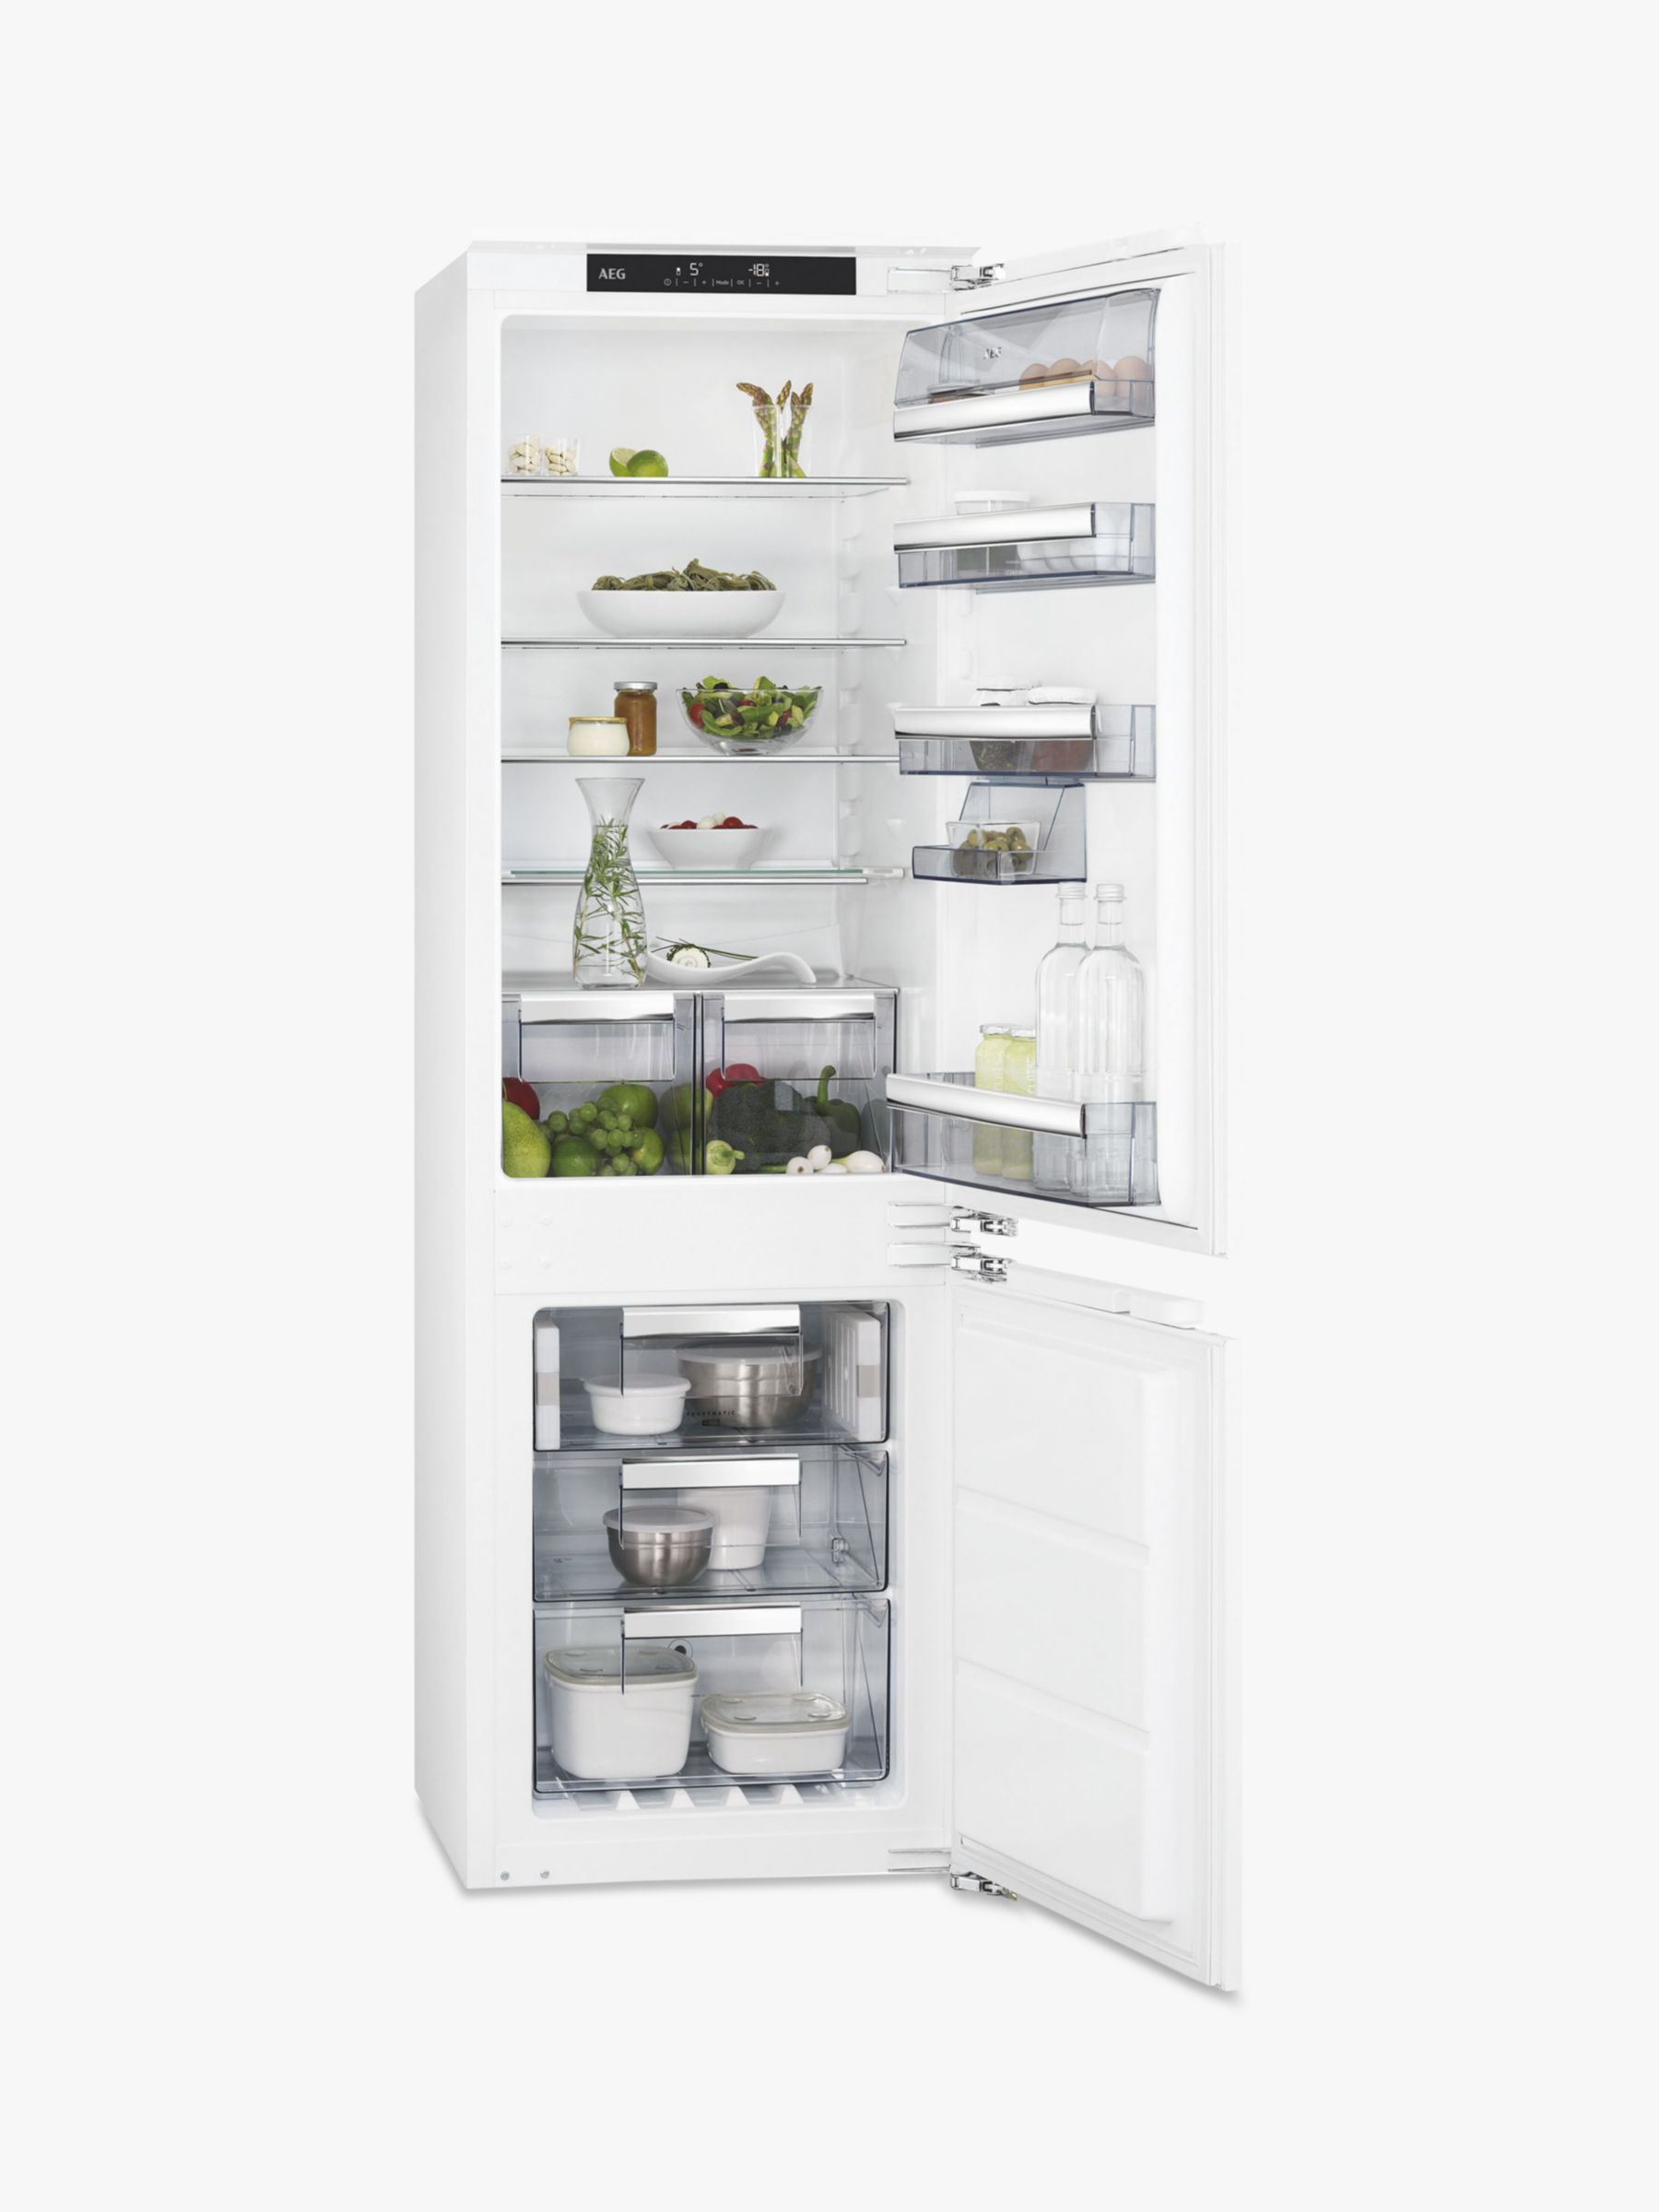 AEG AEG SCE8182XNC Integrated Fridge Freezer, A++ Energy Rating, 56cm Wide, White